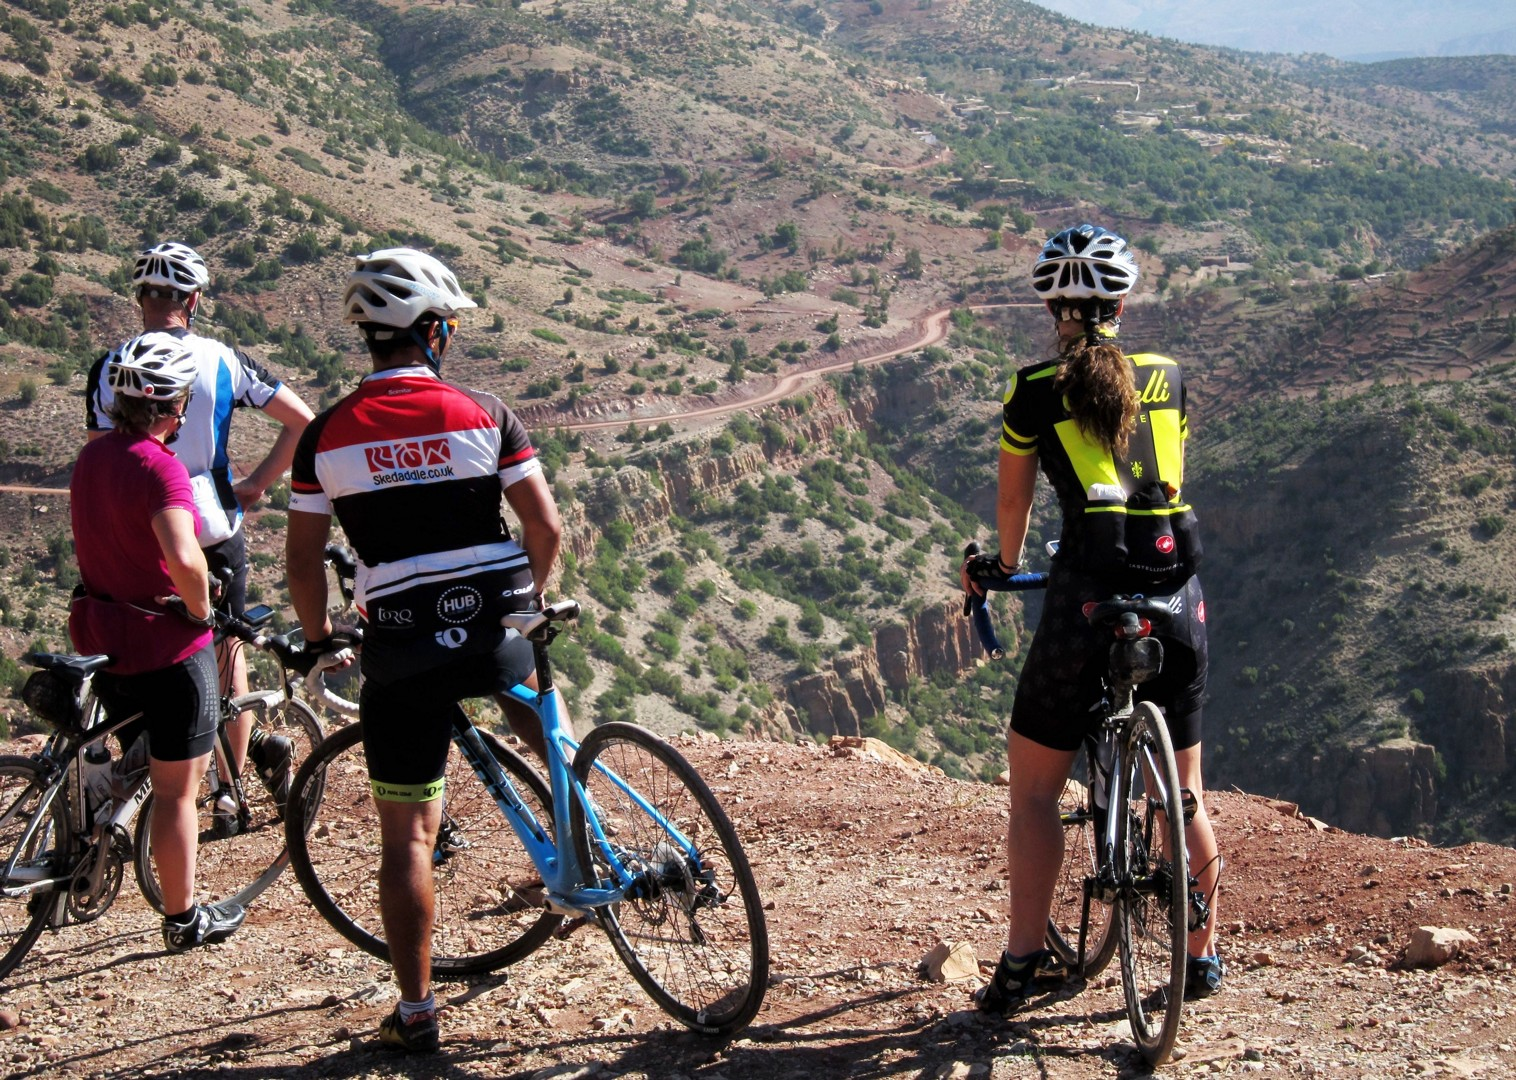 morocco-guided-road-cycling-holiday-road-atlas.jpg - Morocco - Road Atlas - Road Cycling